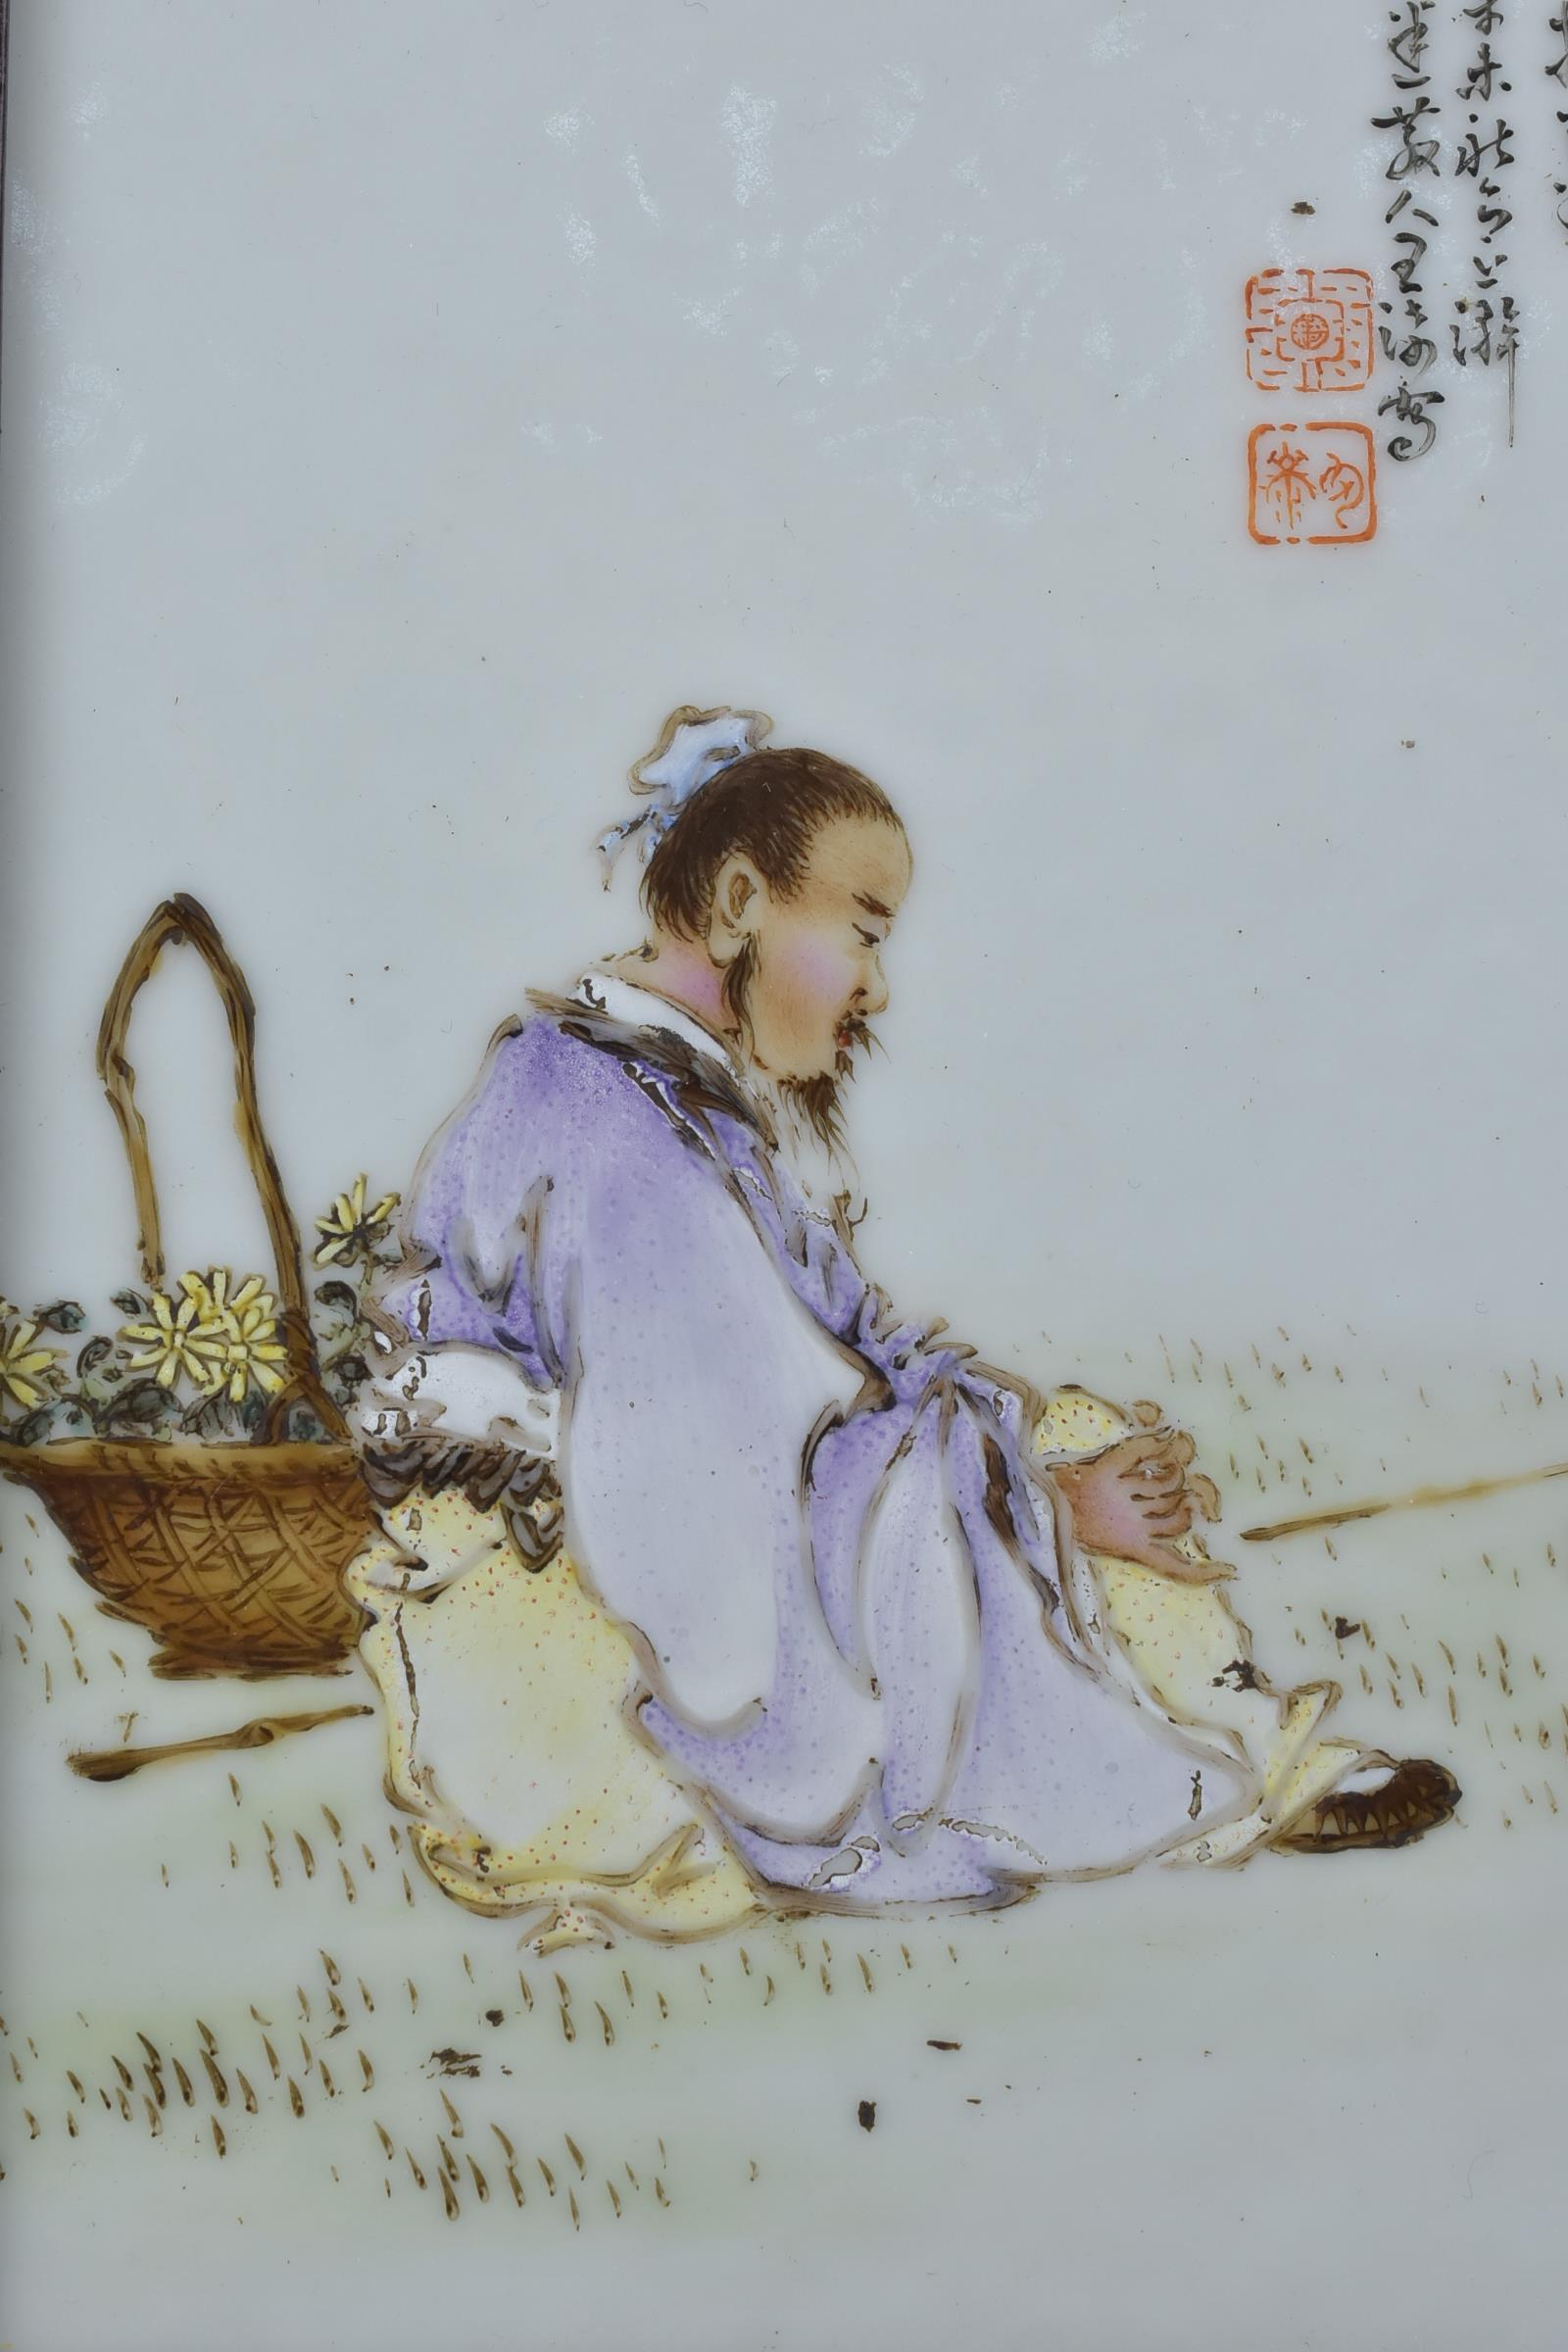 Lot 39 - A Chinese early 20th C. Famille rose porcelain plaque